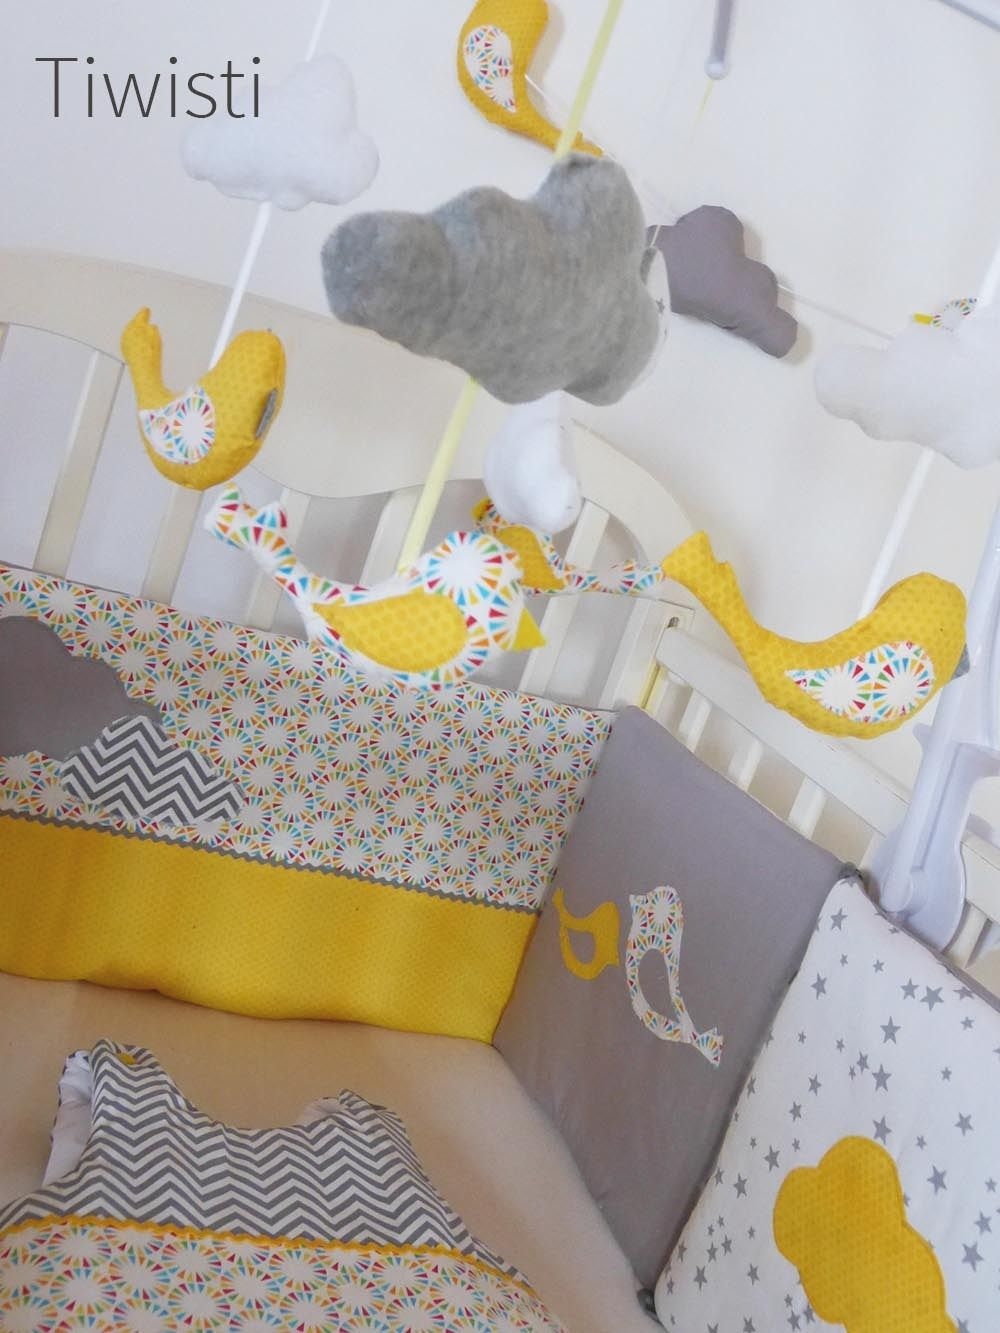 mobile complet pour b b jaune gris et blanc oiseau et nuage chambre jaune orange. Black Bedroom Furniture Sets. Home Design Ideas